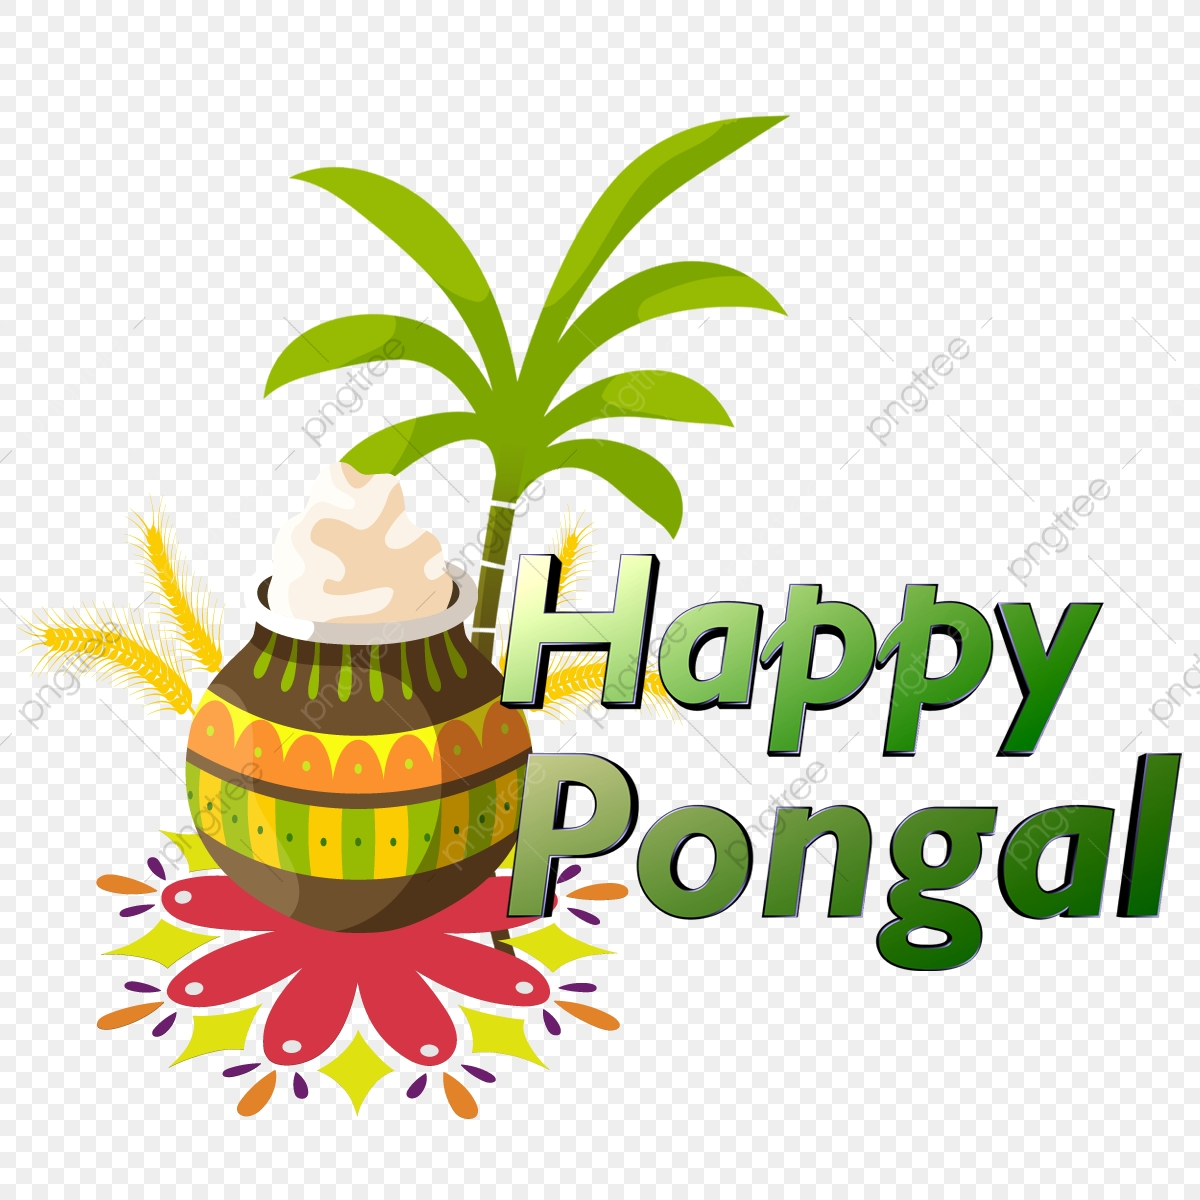 Happy Pongal, Pongal Festival, Tamil Festival PNG.